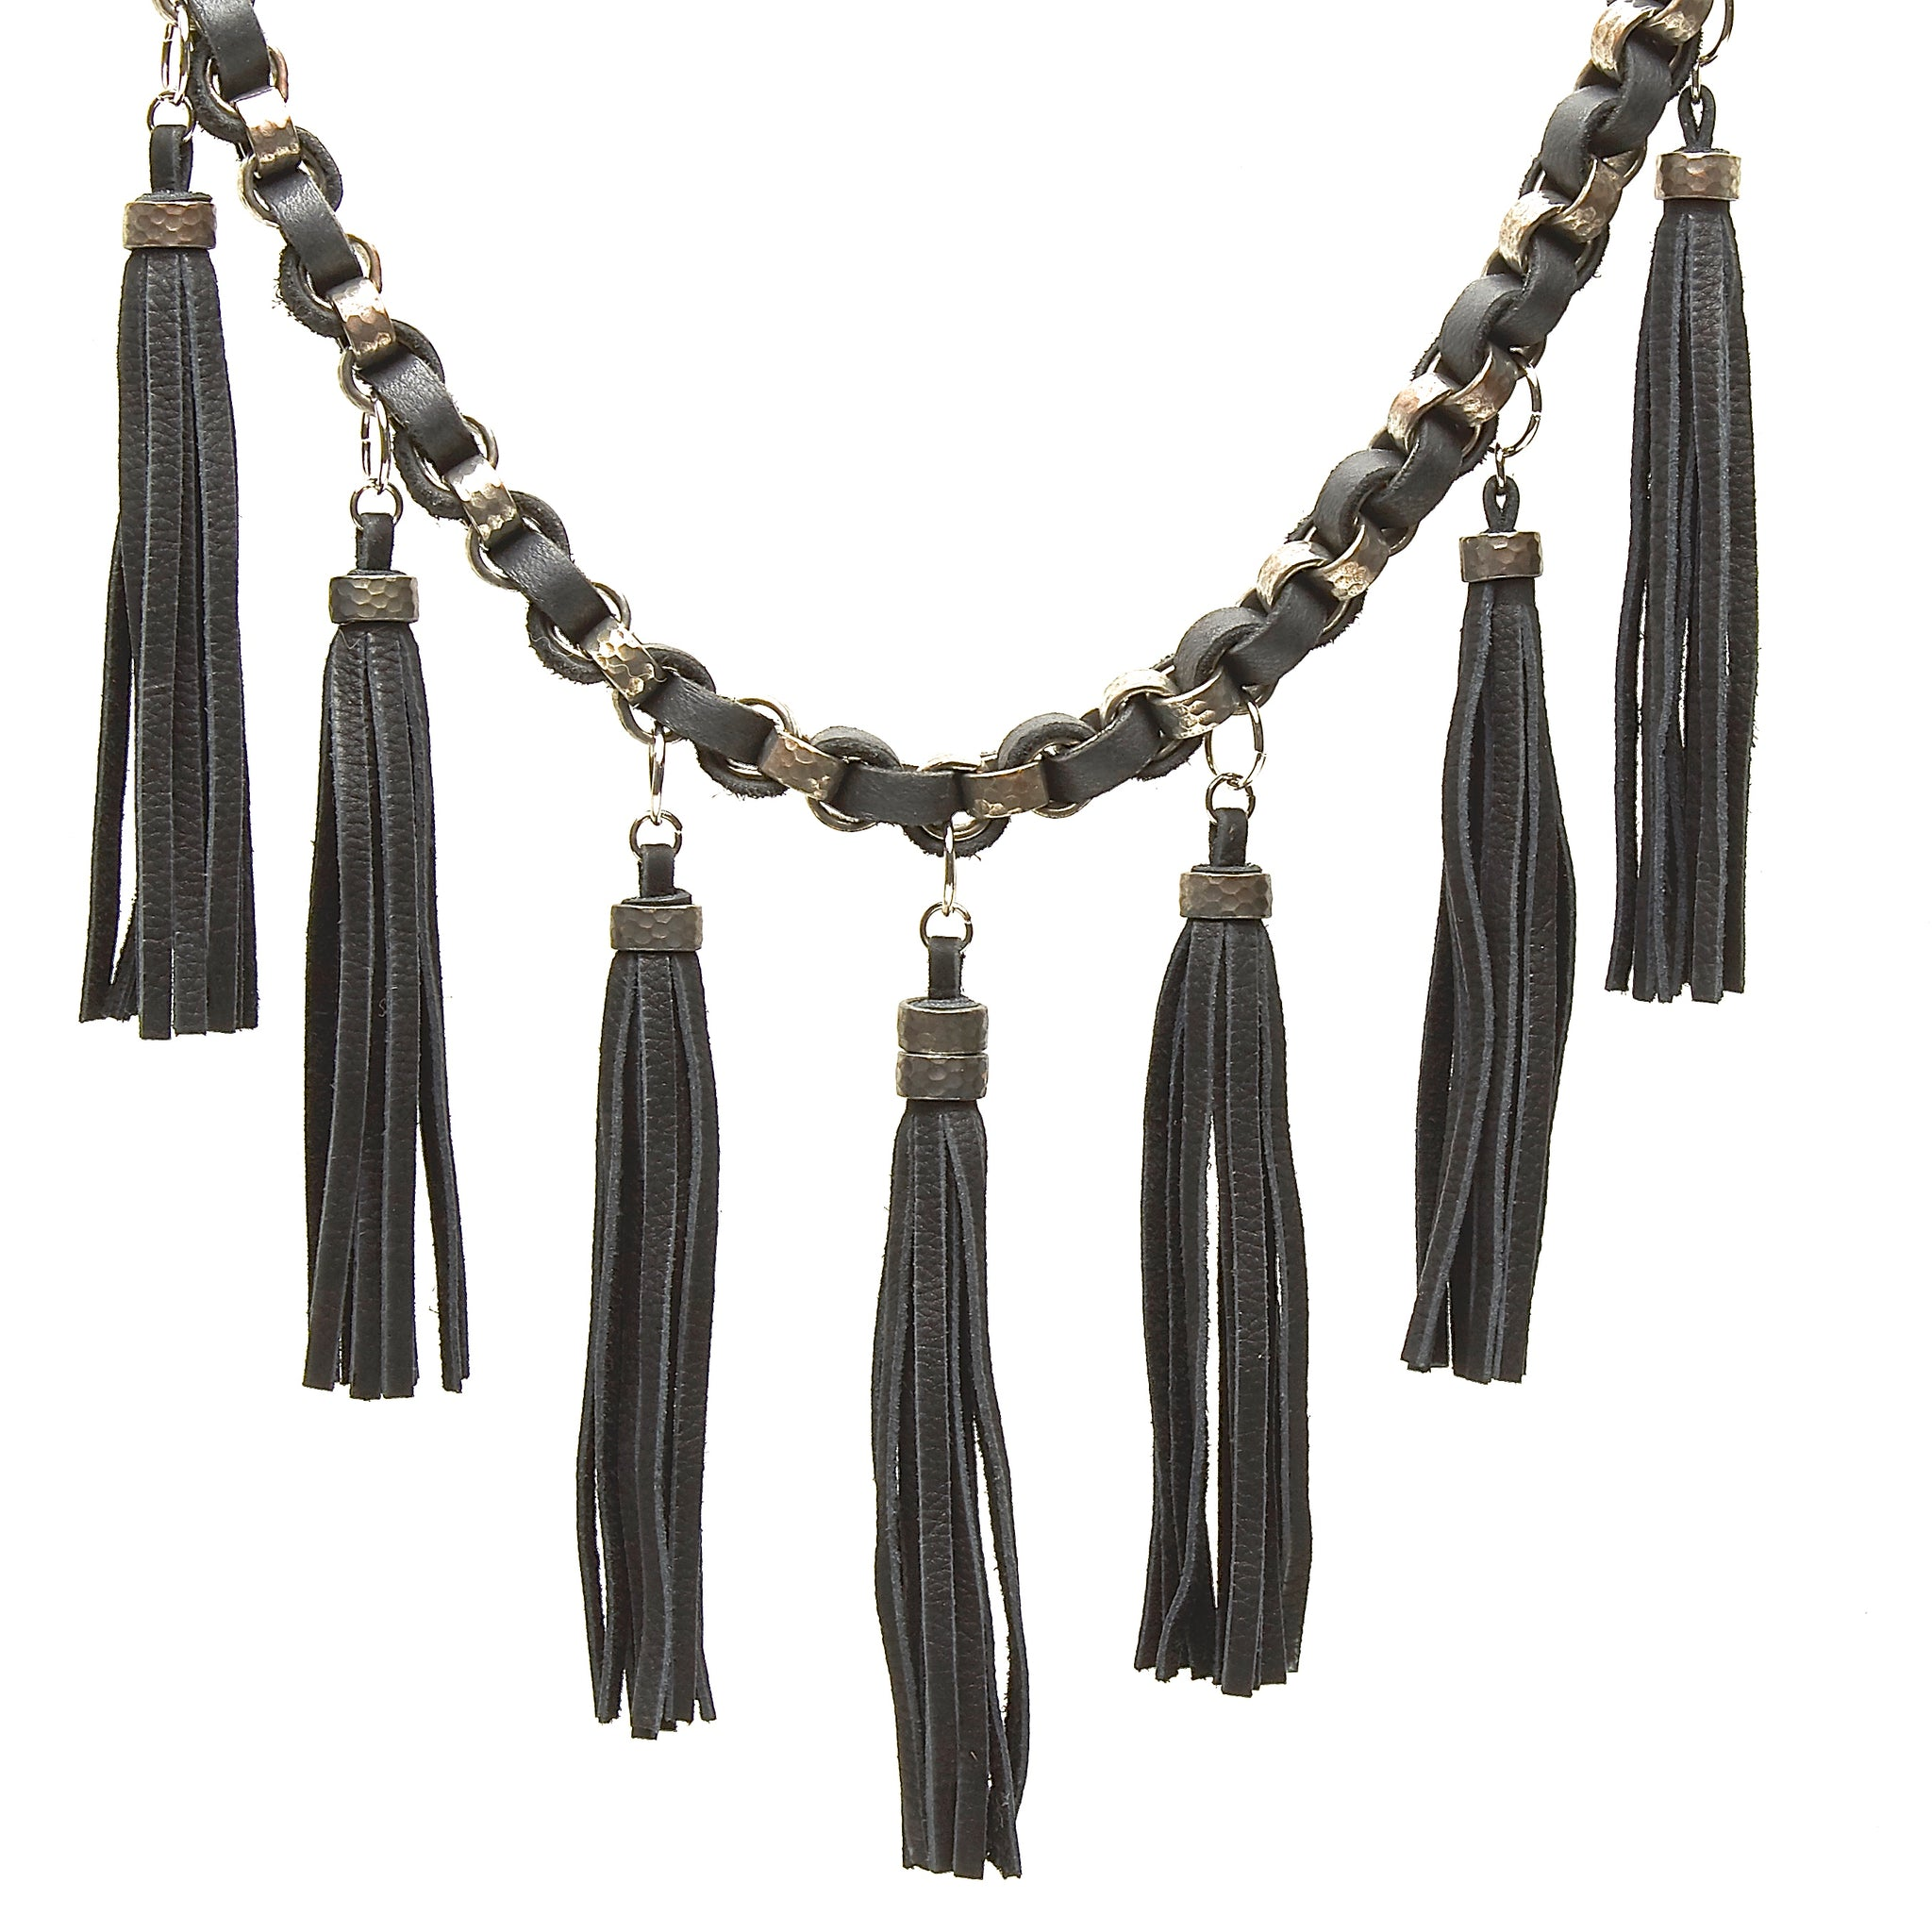 HAMMERED STEEL CHAIN AND DEERSKIN LEATHER WITH TASSELS by nyet jewelry.